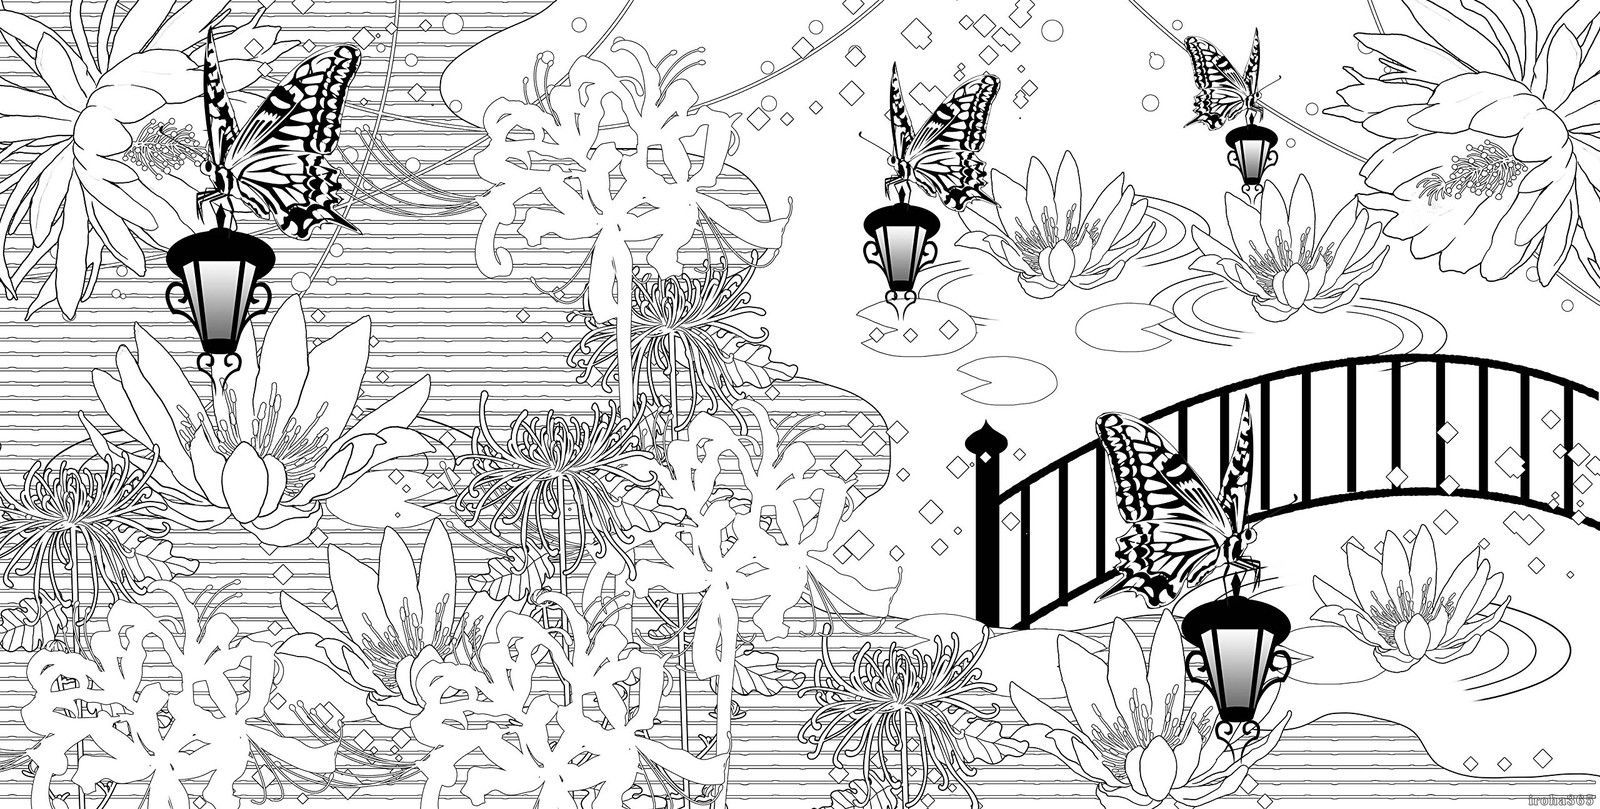 Japanese Design Coloring Book Adult Coloring Book Art Therapy 5 • $34.00